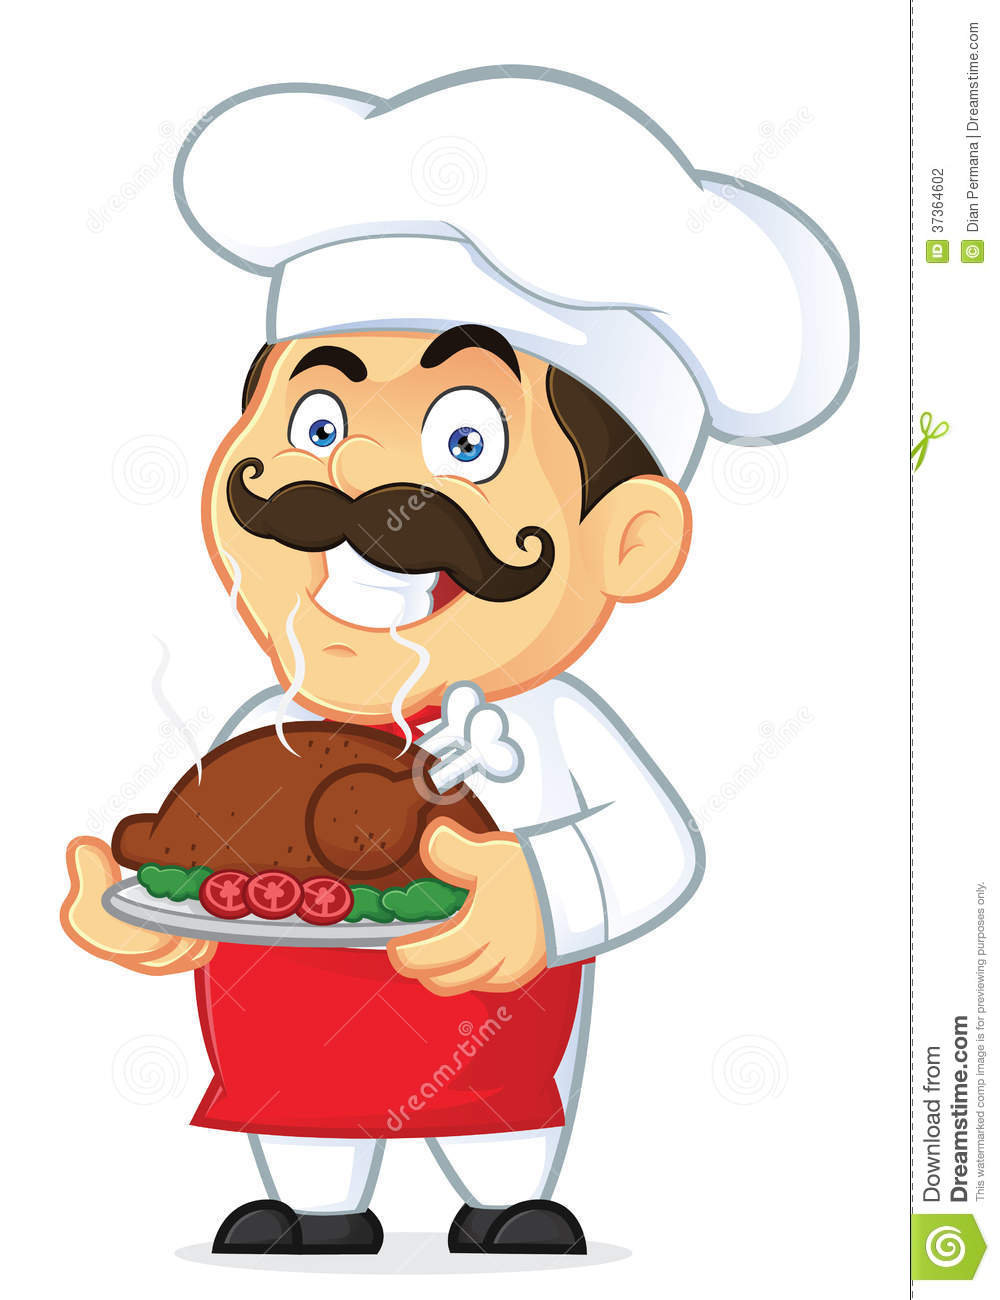 clipart chicken cooked - photo #14